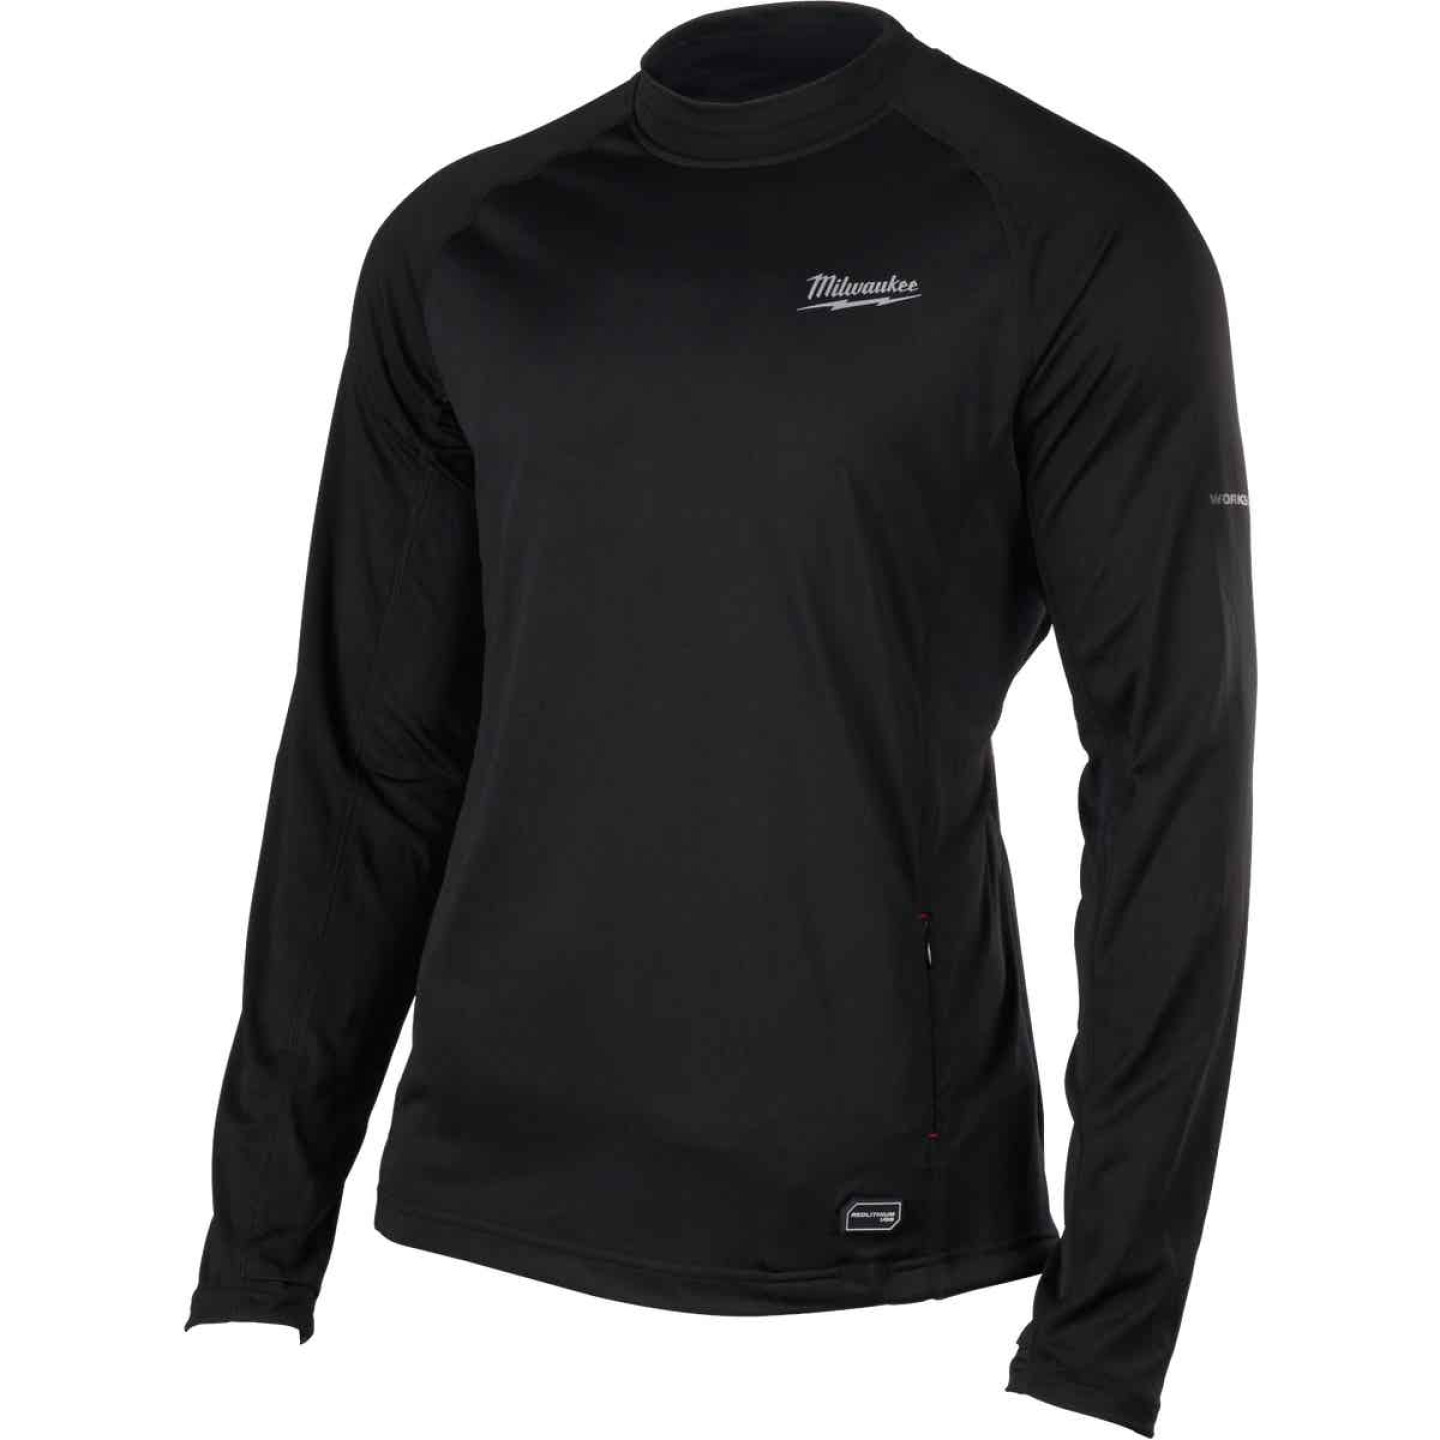 Milwaukee Workskin Medium Black Heated Midweight Base Layer Shirt Image 6